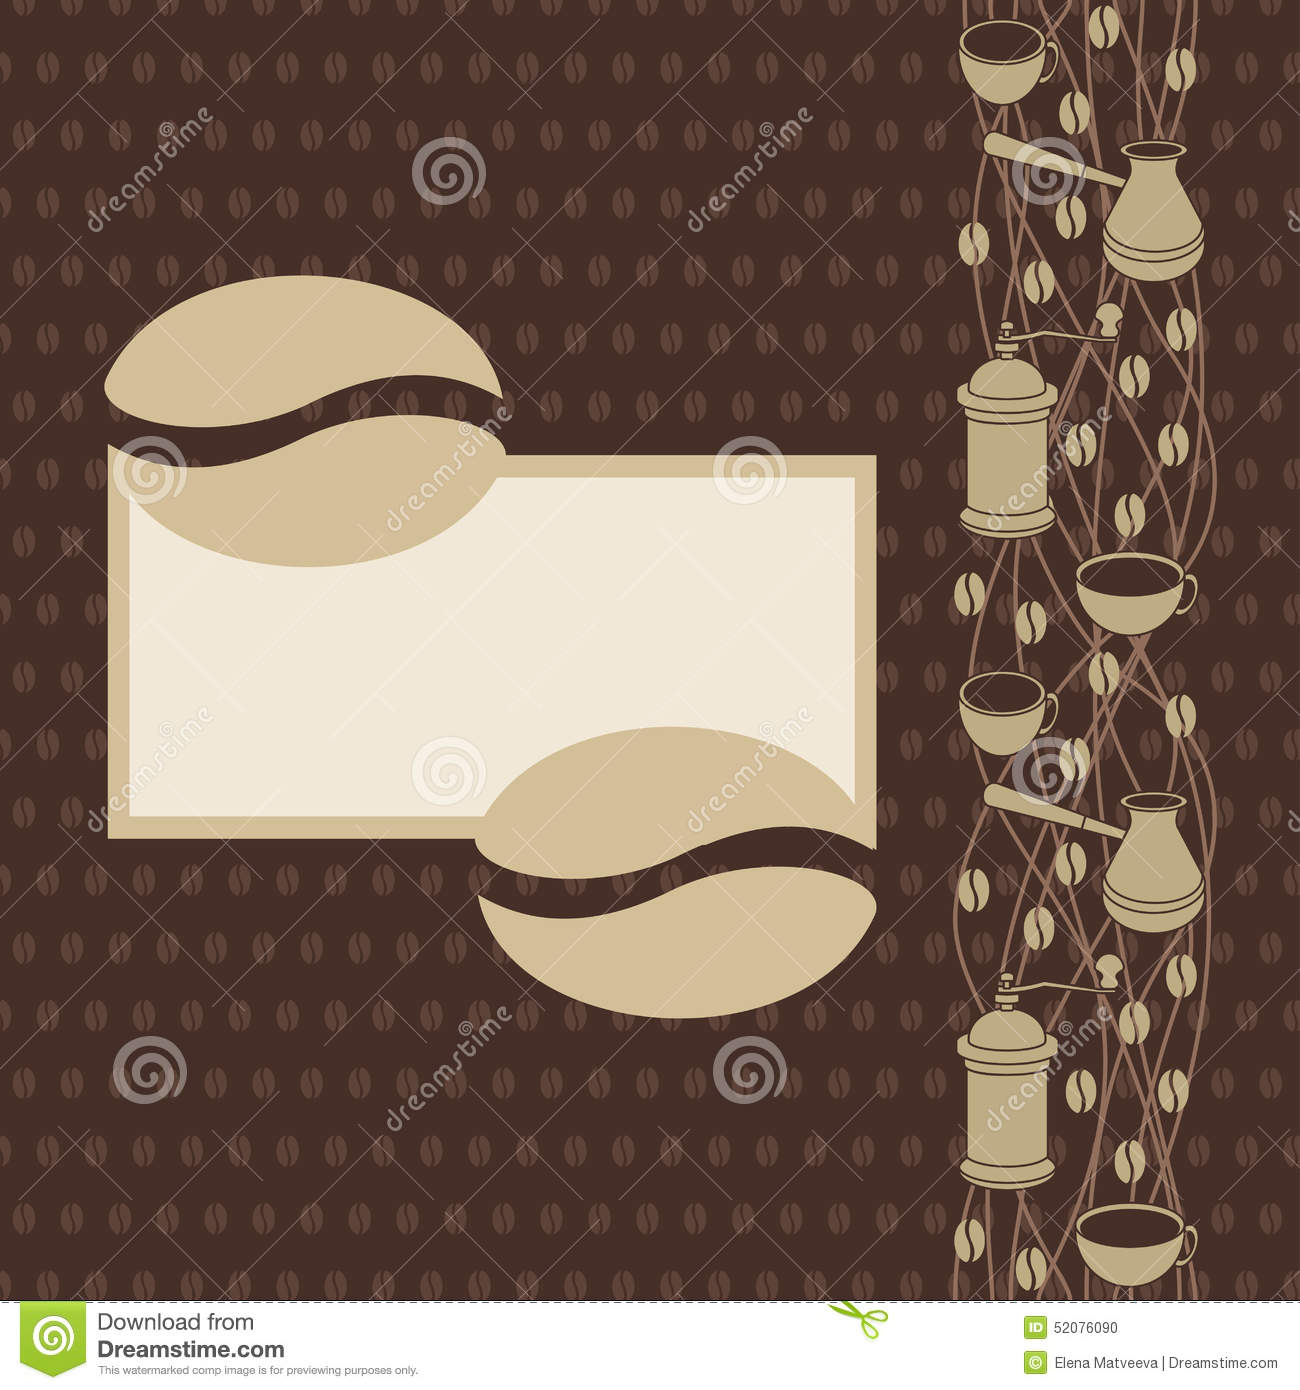 coffee bean coloring page - coffee bean page stock vector image 52076090